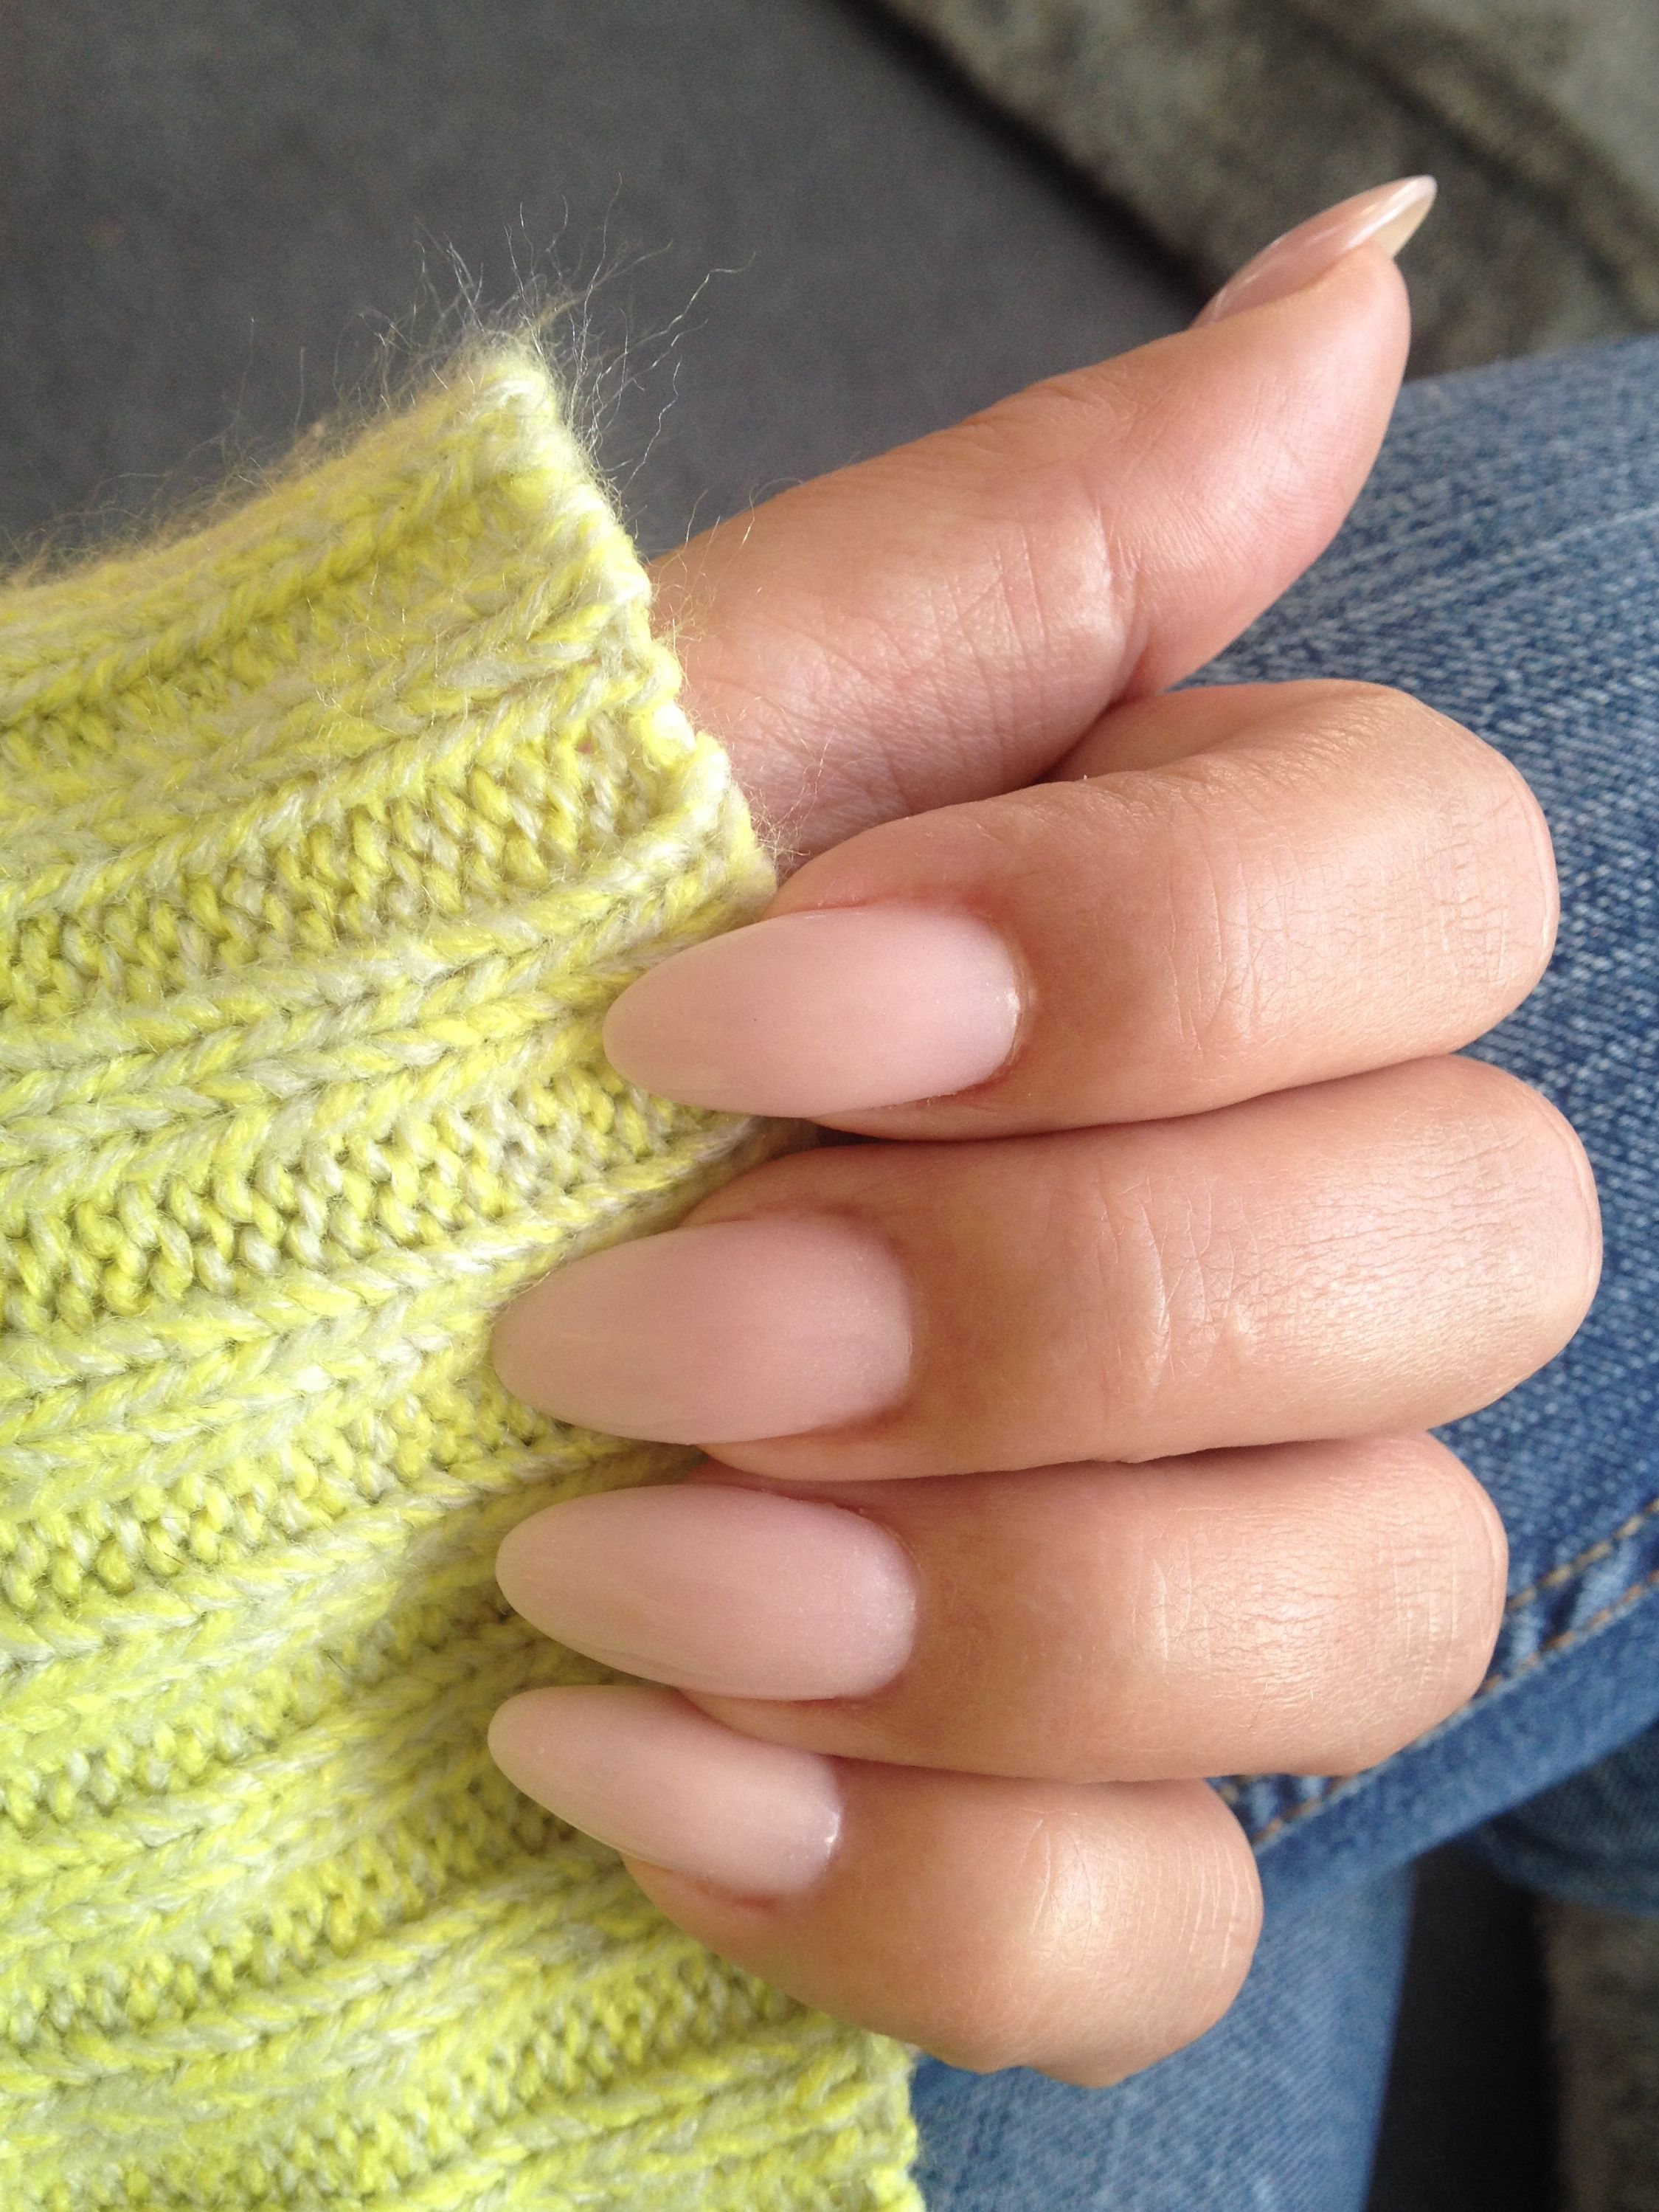 nude almond nails | NAILS II | Pinterest | Almond nails, Almonds and ...